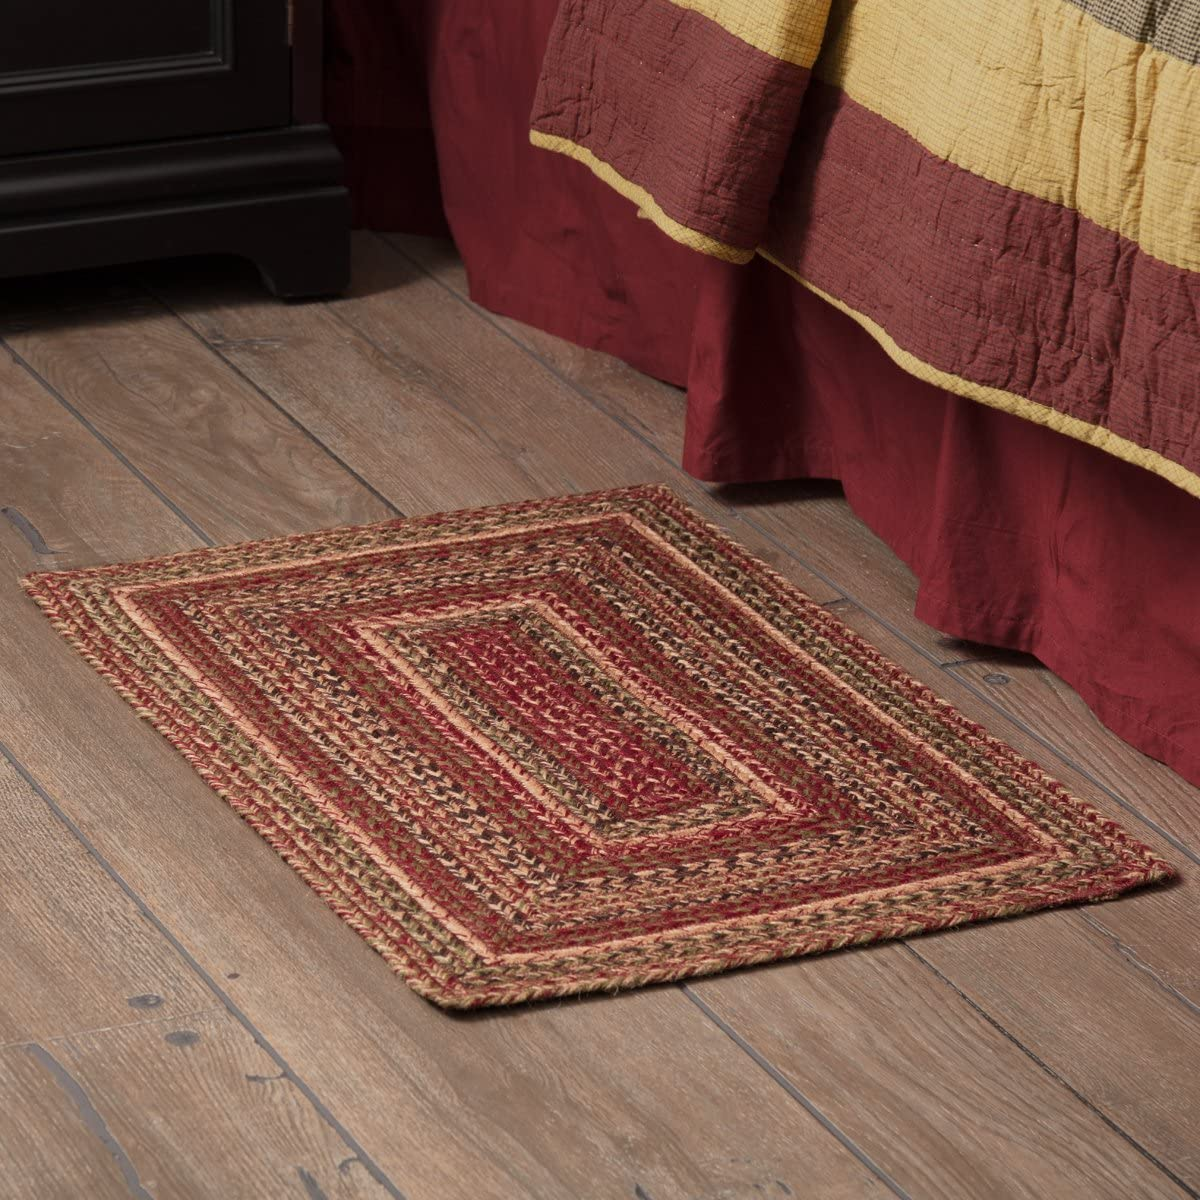 VHC Brands 45598 Burgundy Red Primitive Country Flooring Cider Mill Jute Rug, 20×30